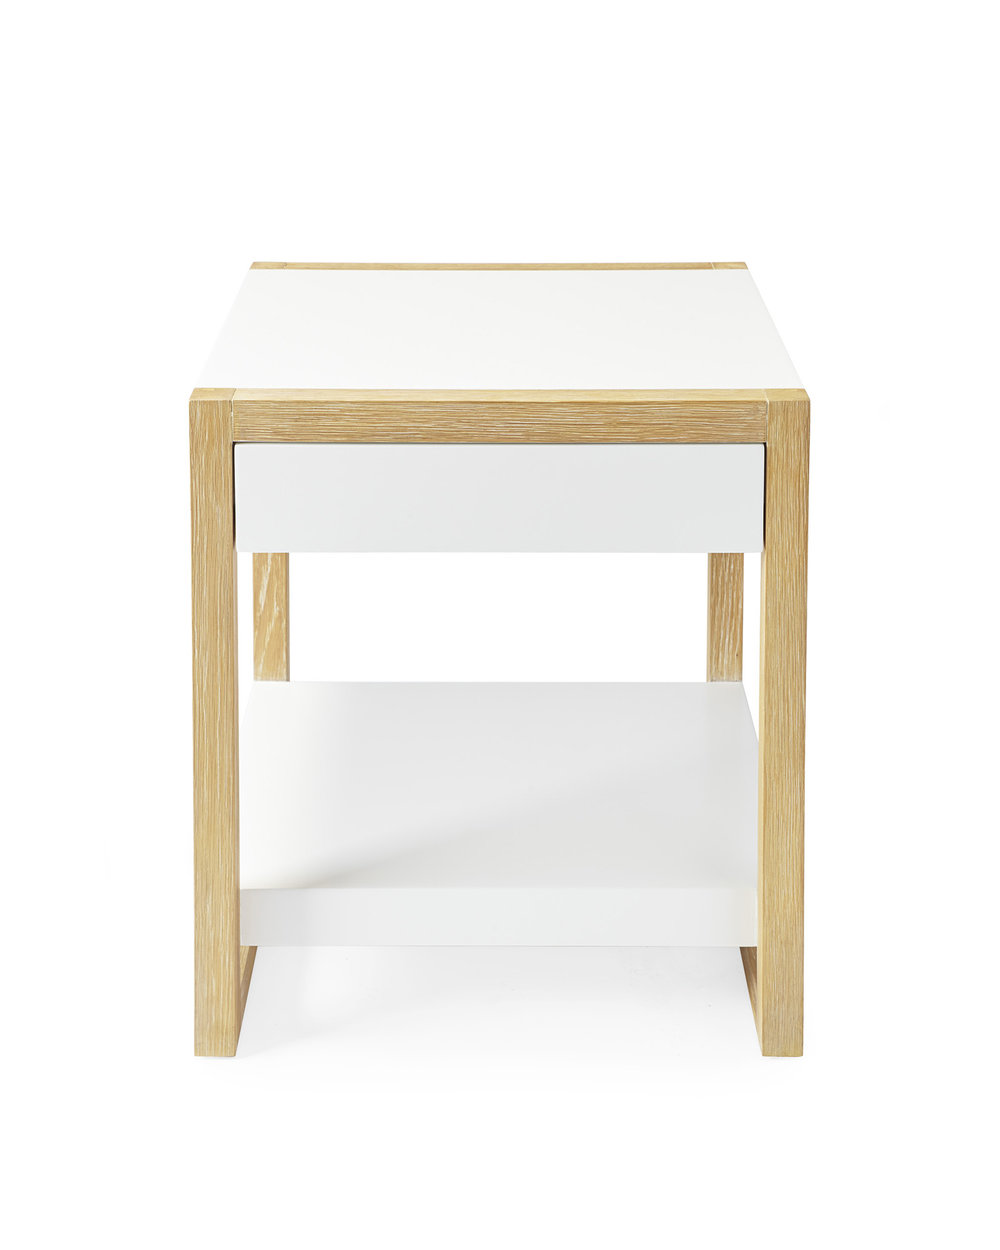 Furn_Nash_Side_Table_White_Front_MV_Crop_SH.jpg